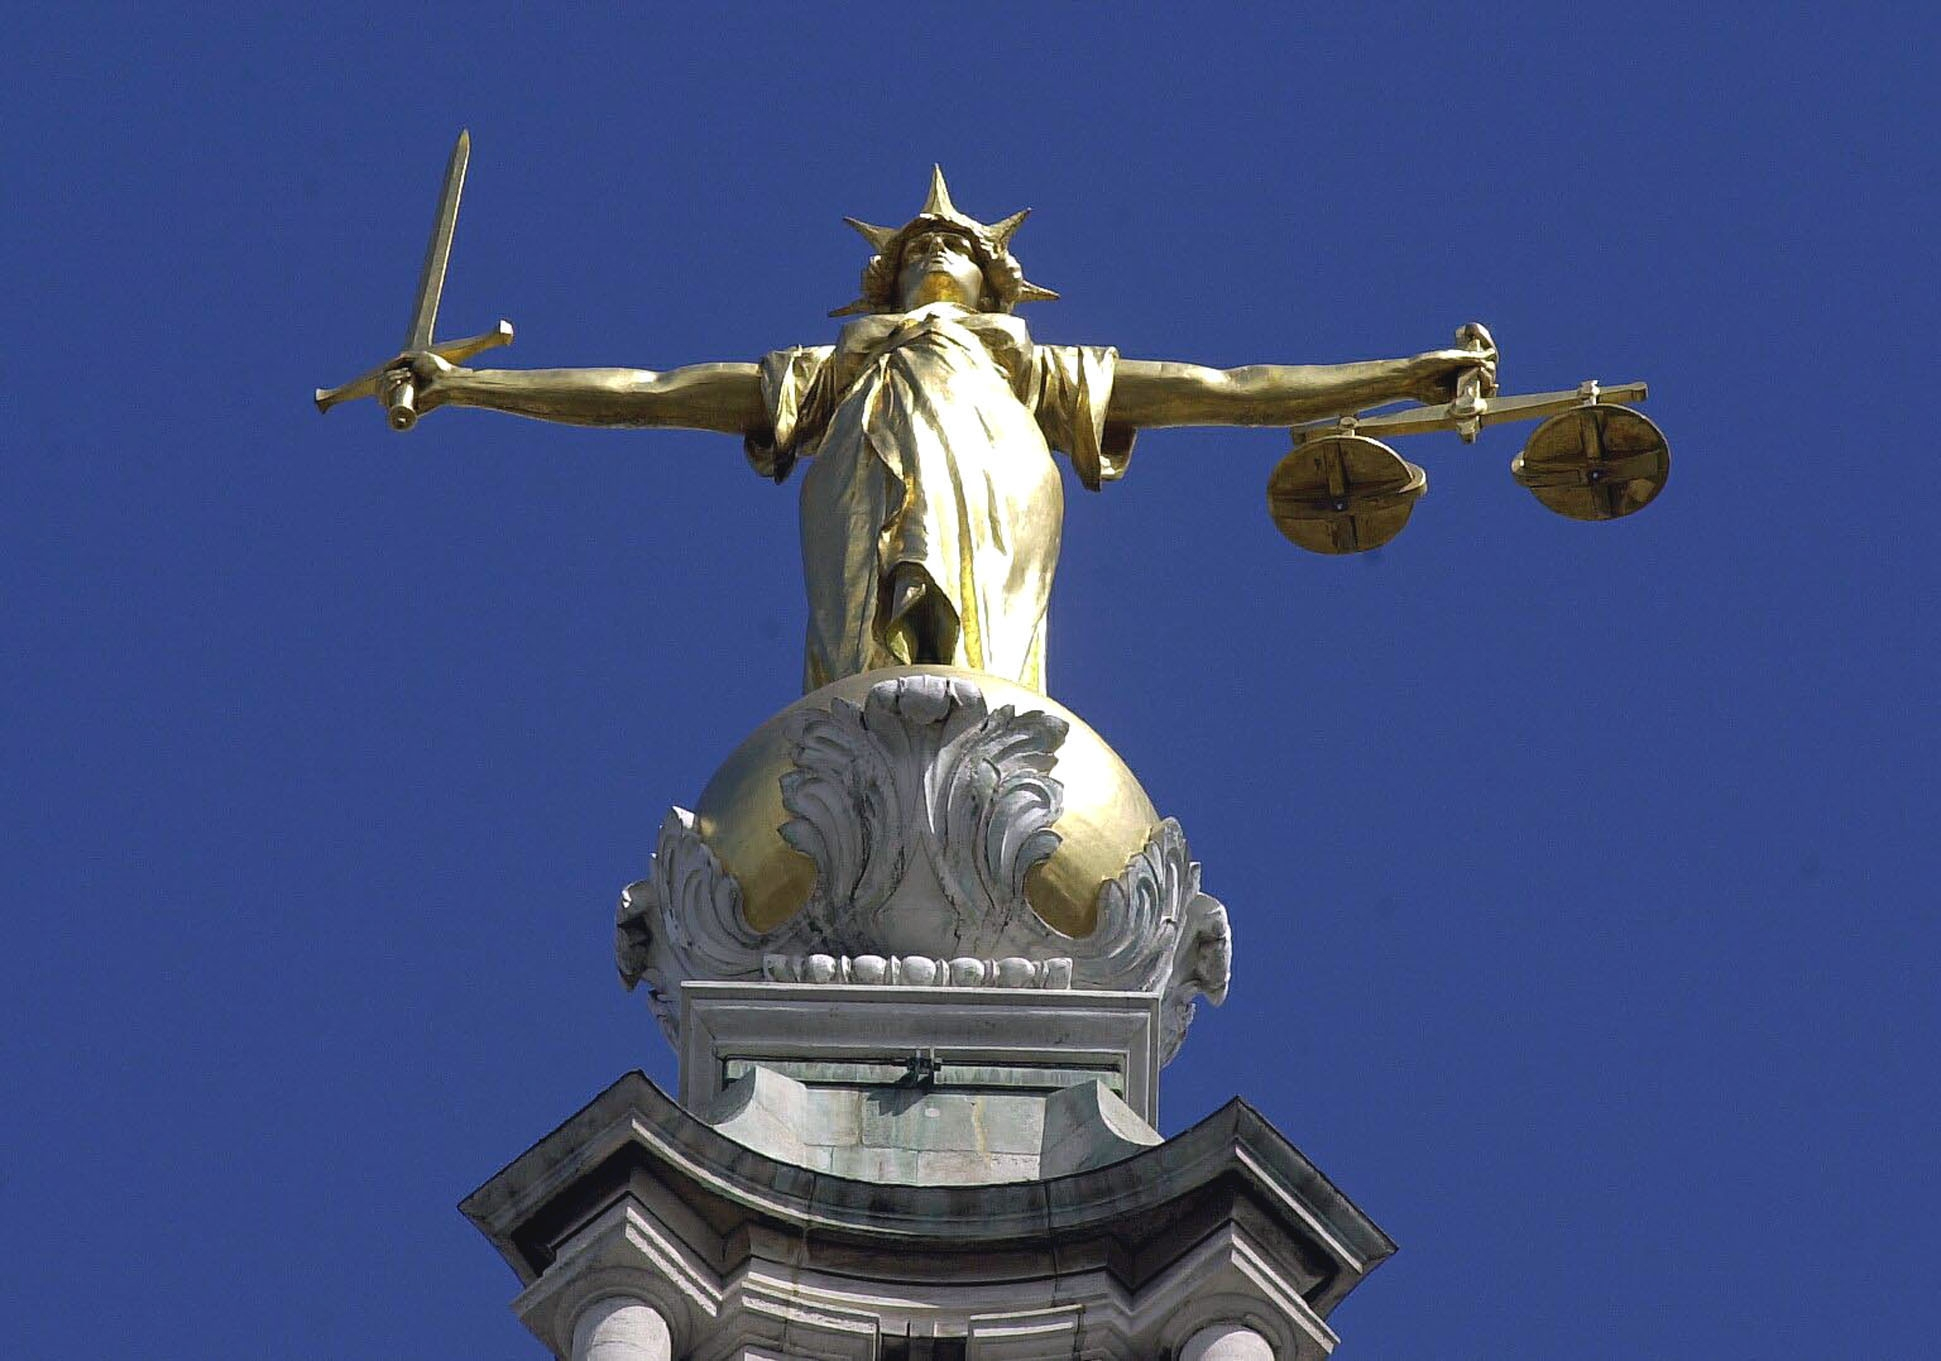 Man spared jail after police assault